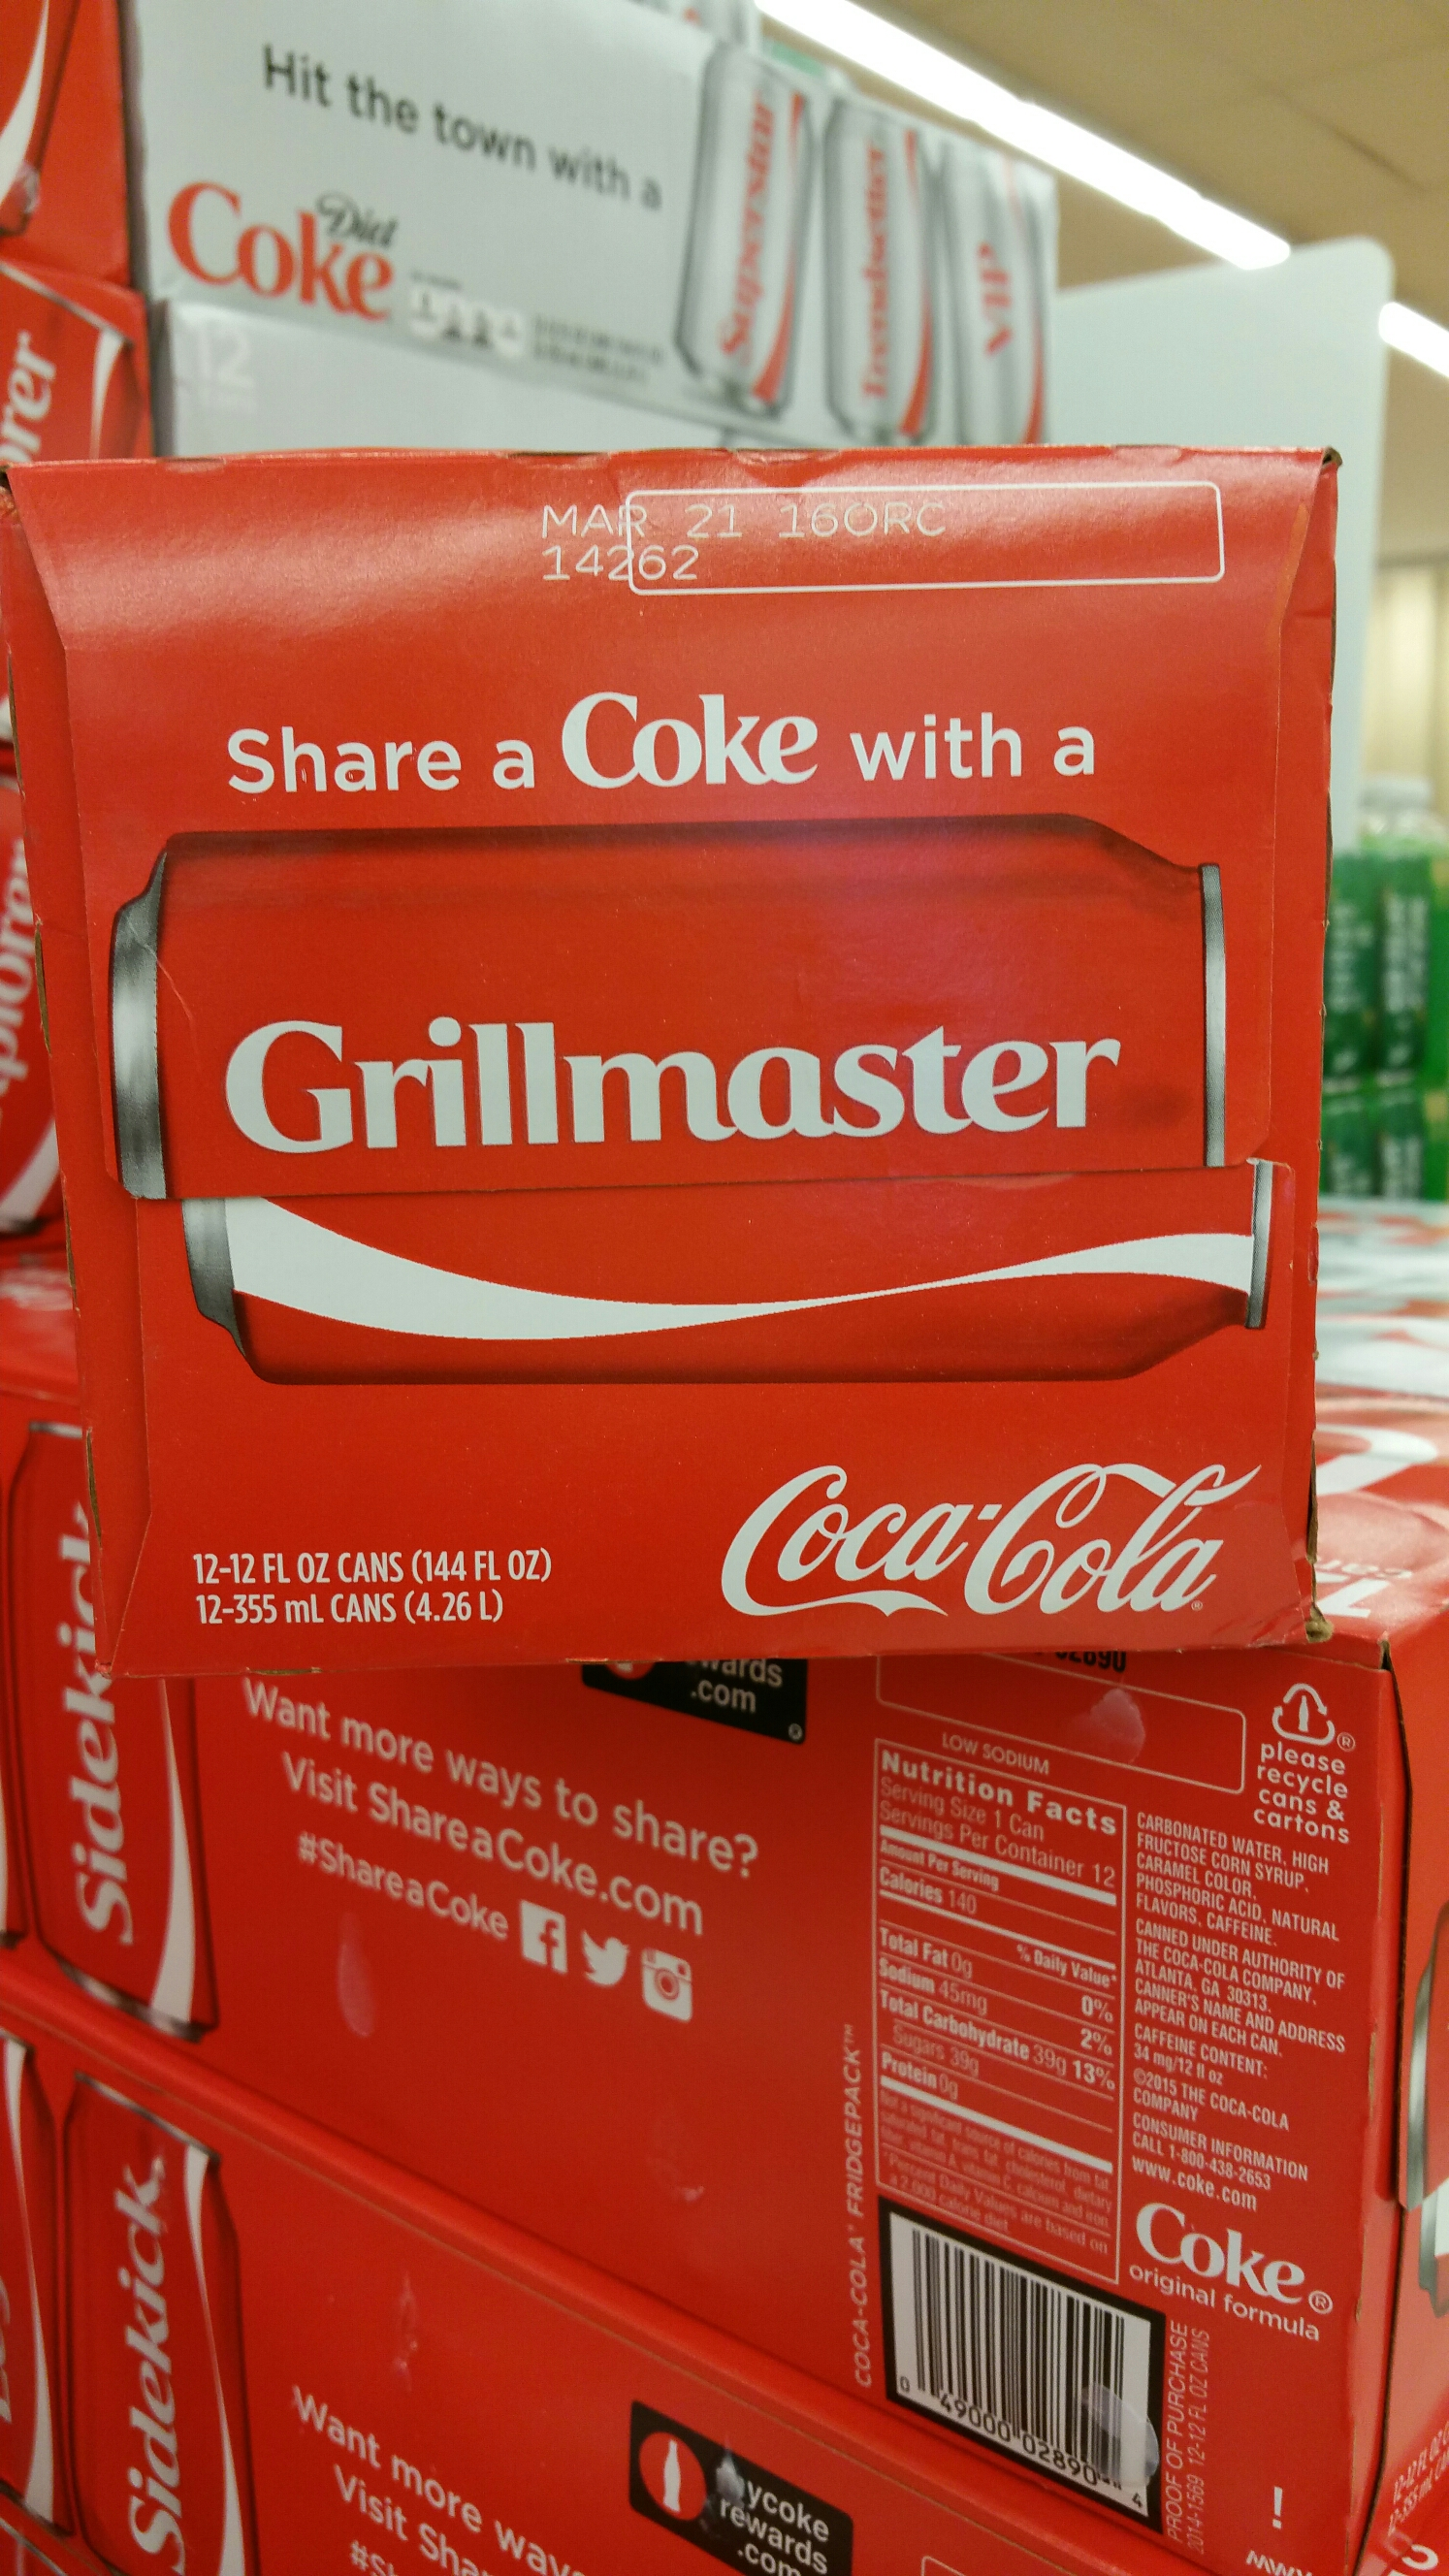 Grillmaster Coke Cans